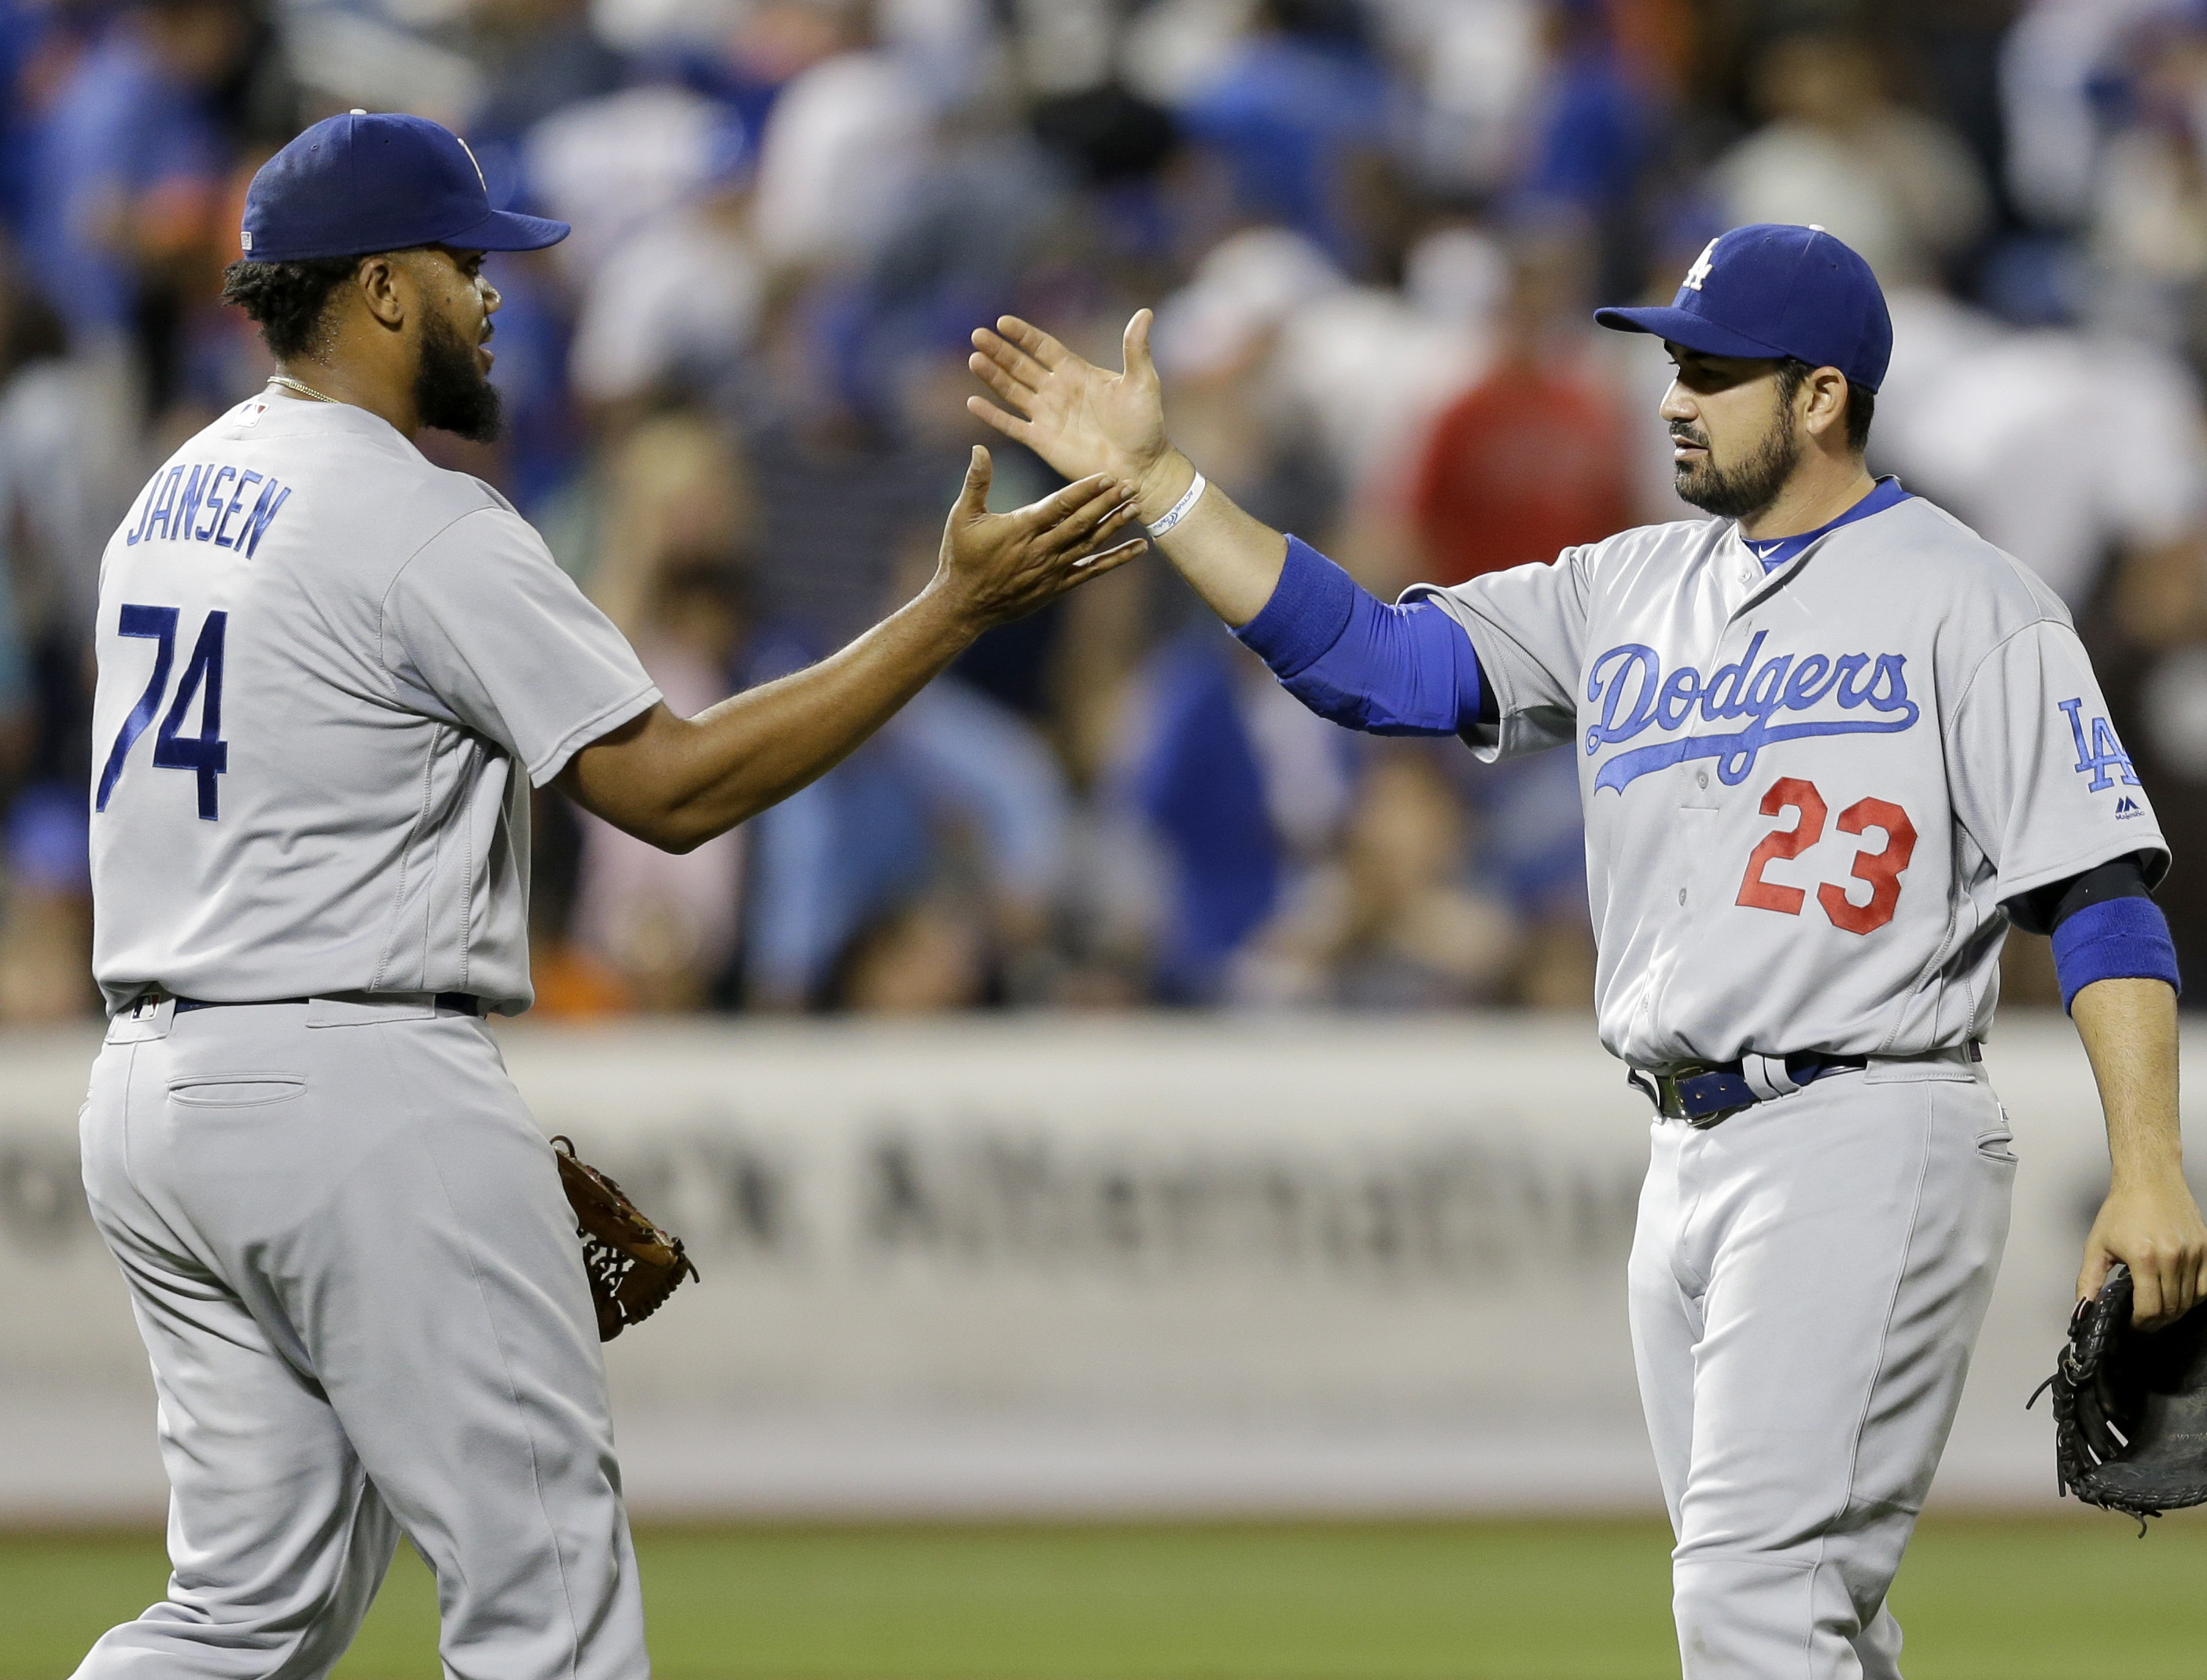 Los Angeles Dodgers relief pitcher Kenley Jansen, left, and first baseman Adrian Gonzalez celebrate after the baseball game against the New York Mets at Citi Field, Sunday, May 29, 2016 in New York. The Dodgers defeated the Mets 4-2. (AP Photo/Seth Wenig)